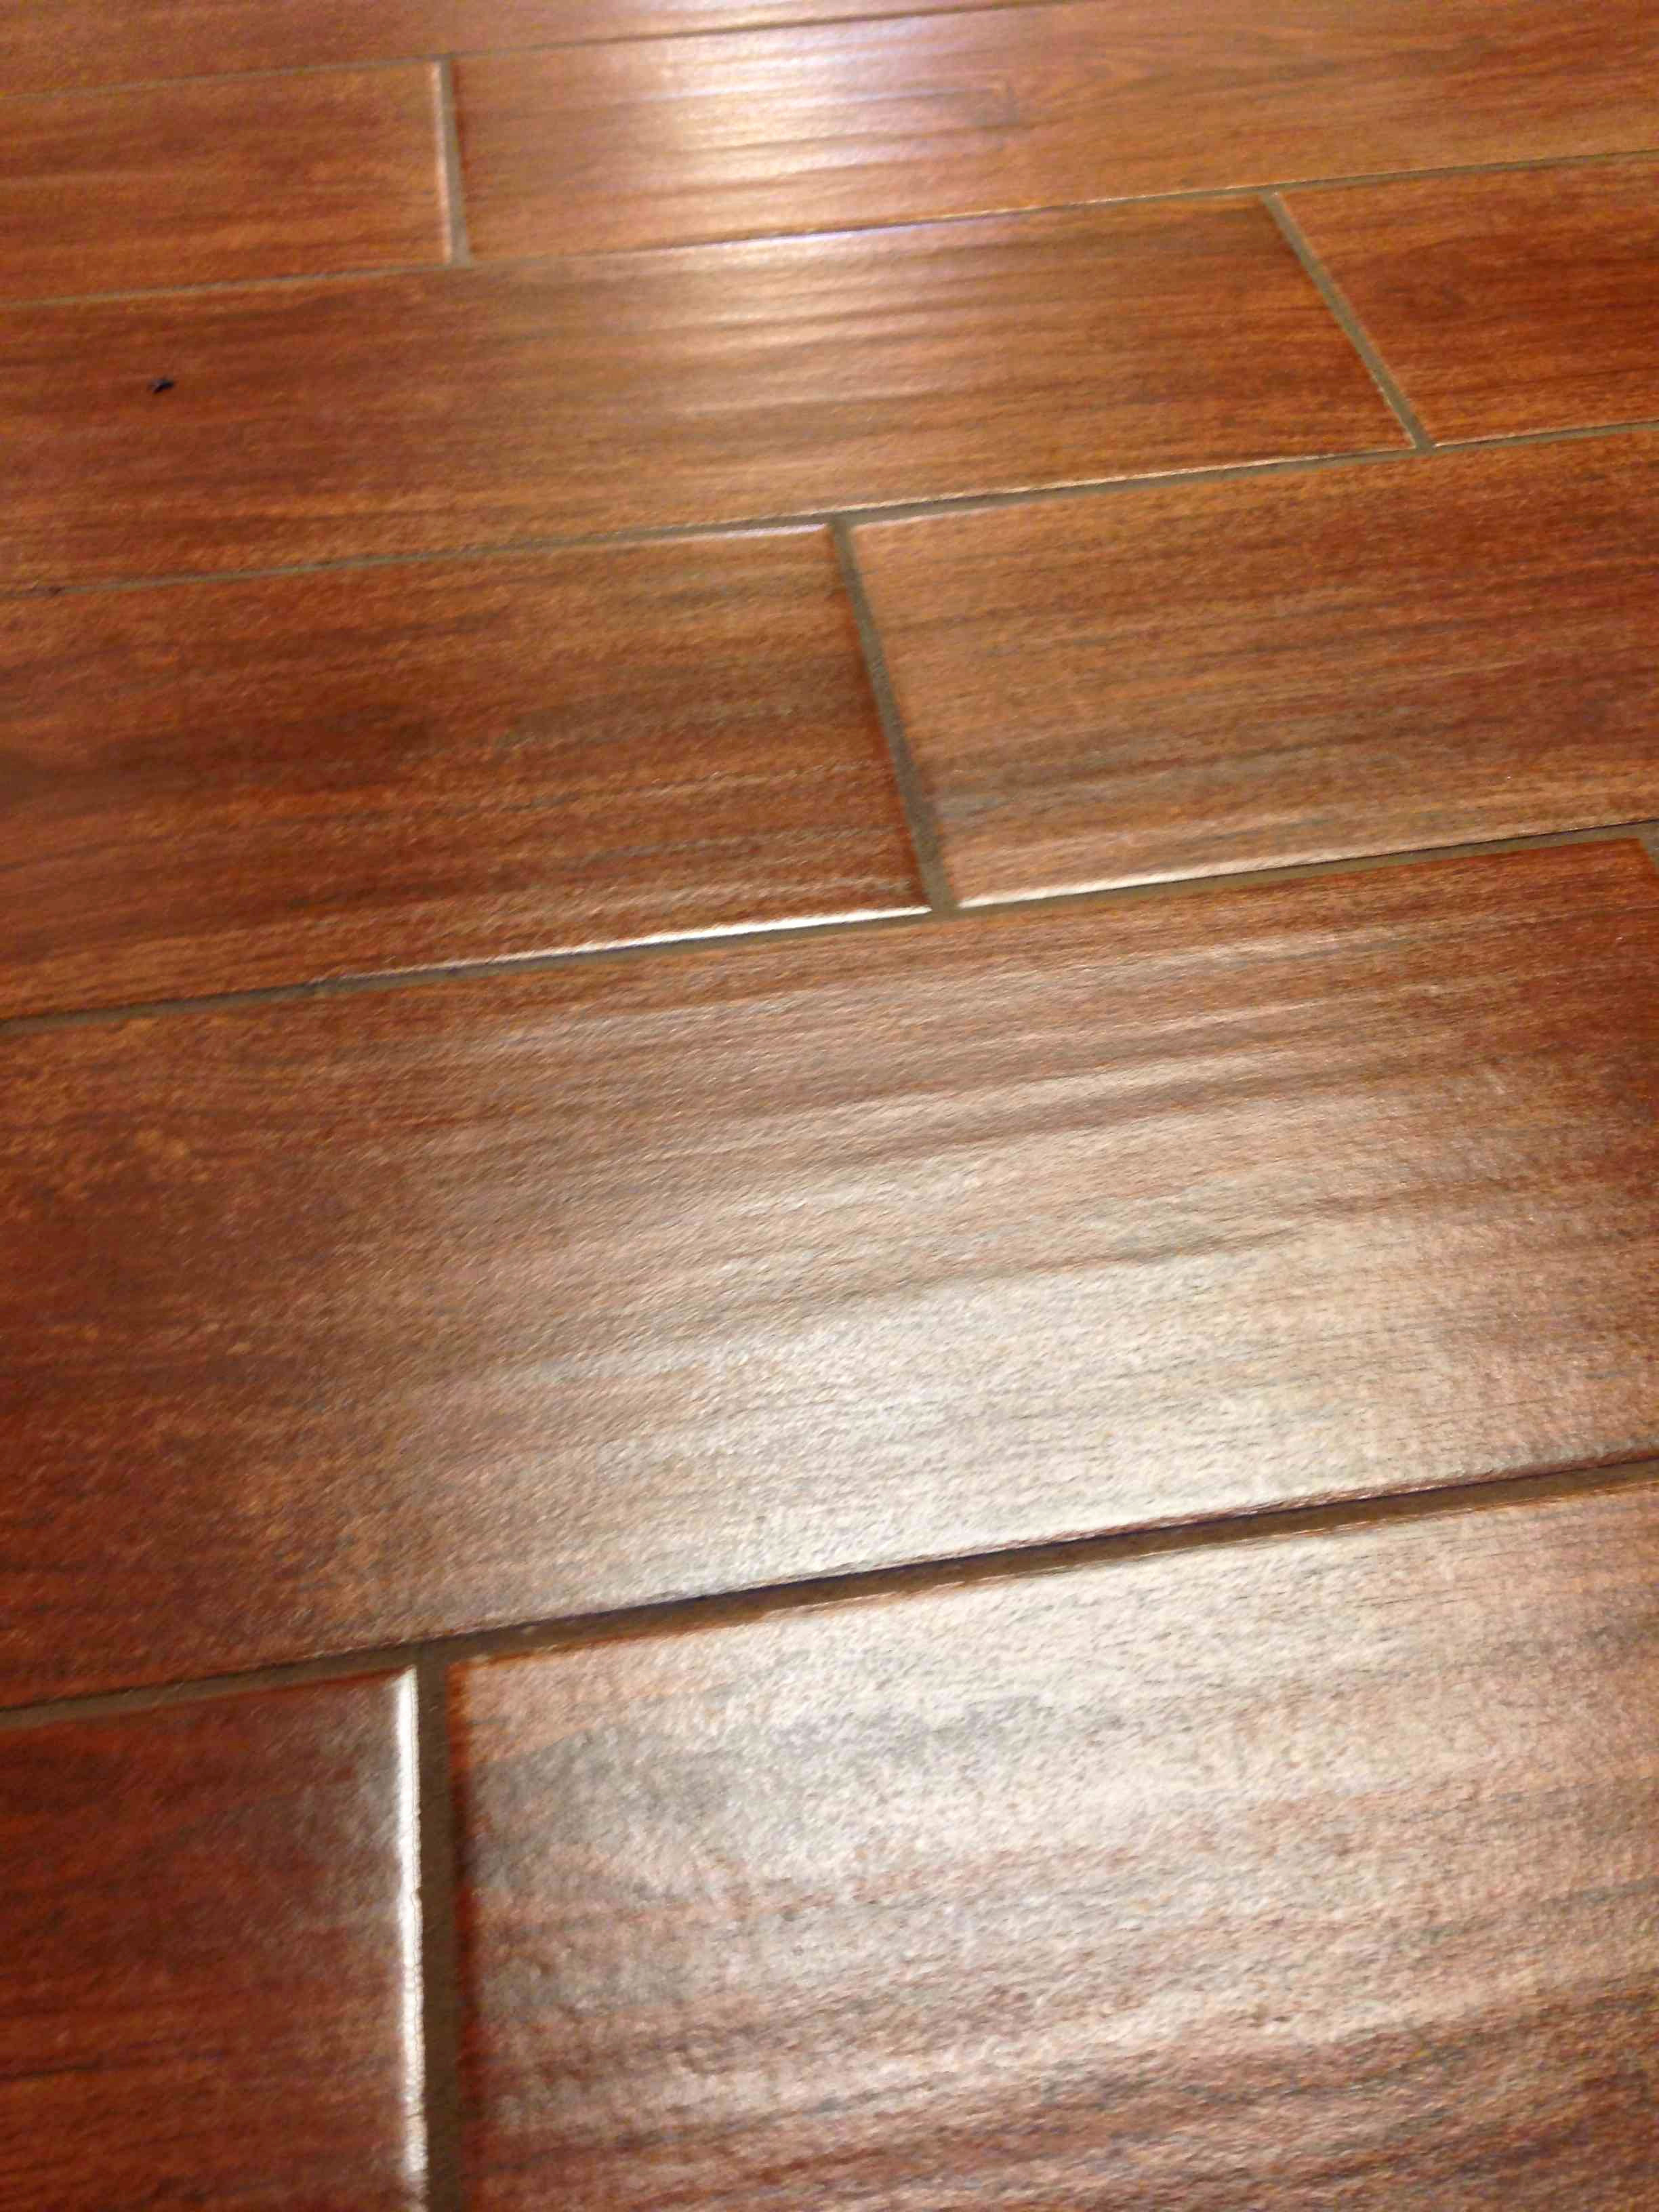 can you put hardwood floors over tile of best hardwood floors floor plan ideas with harwood flooring best tile that looks like hardwood floors elegant i pinimg 736x 0d 7b